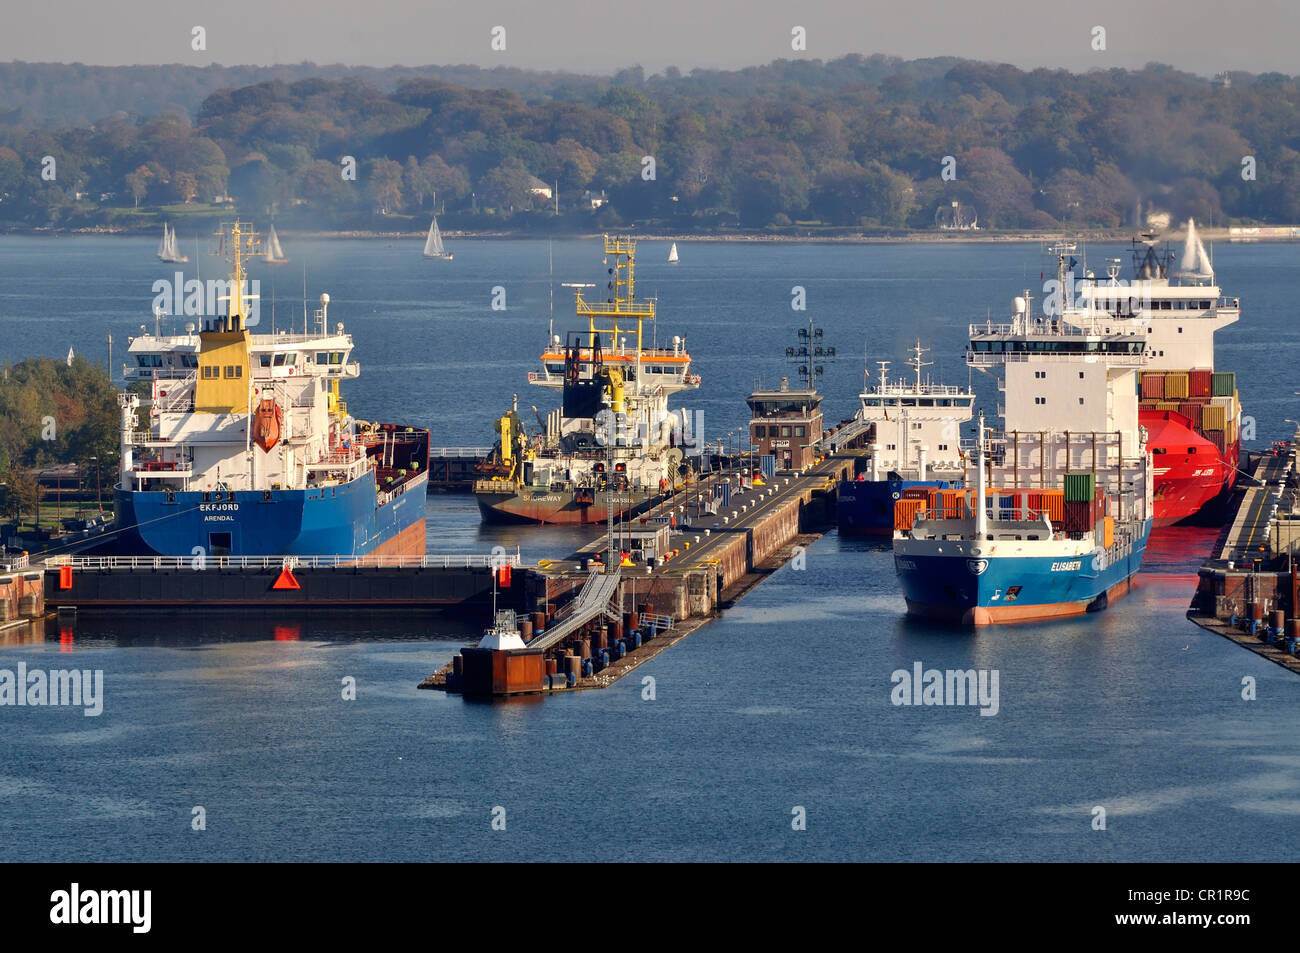 Shipping traffic at Holtenau lock, Nord-Ostsee-Kanal, Kiel Canal, Kiel, Schleswig-Holstein, Germany, Europe - Stock Image